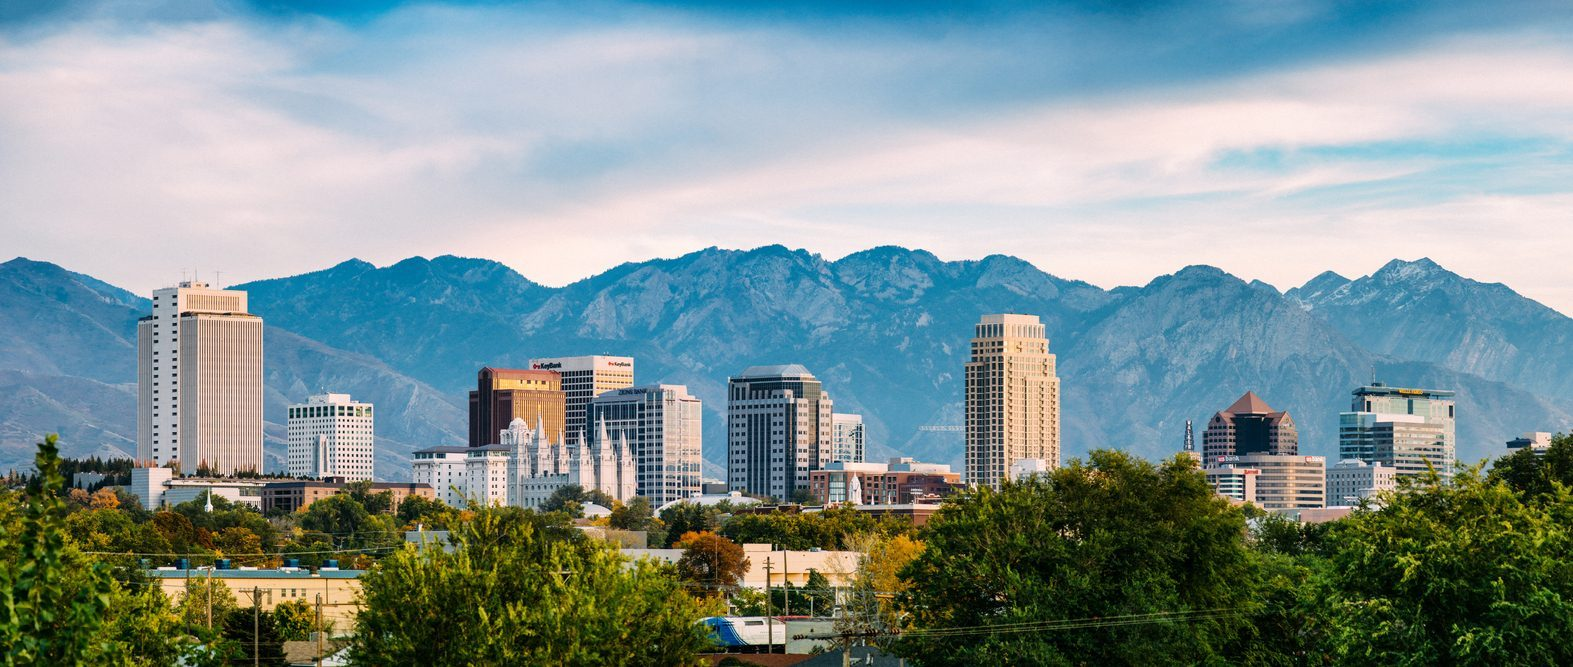 salt lake city utah skyline